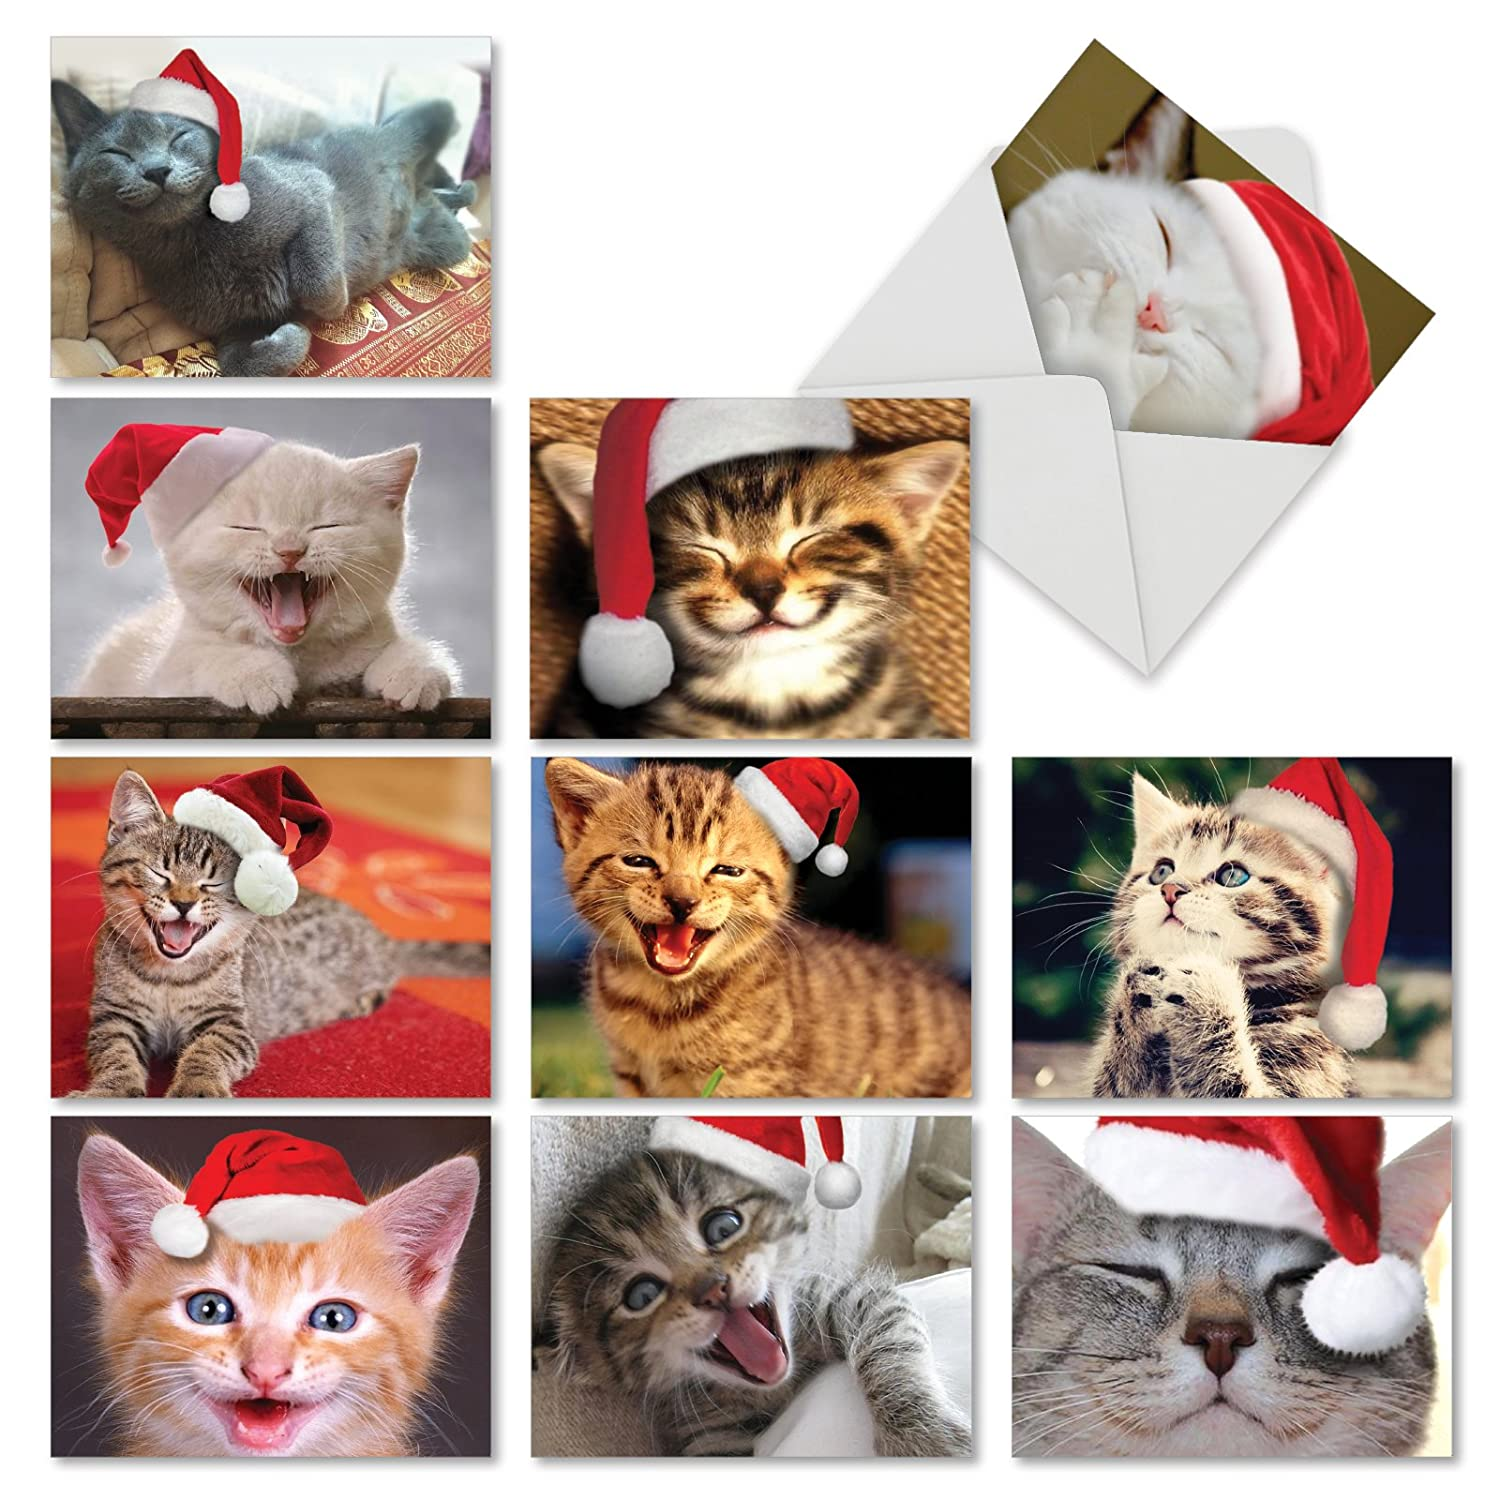 Christmas Smitten Kittens' Holiday Notes, Boxed Set of 10 Sweet Kitties  with Santa Caps 4 x 5.12 inch, Assorted Christmas Cats Holiday Greeting  Cards, ...